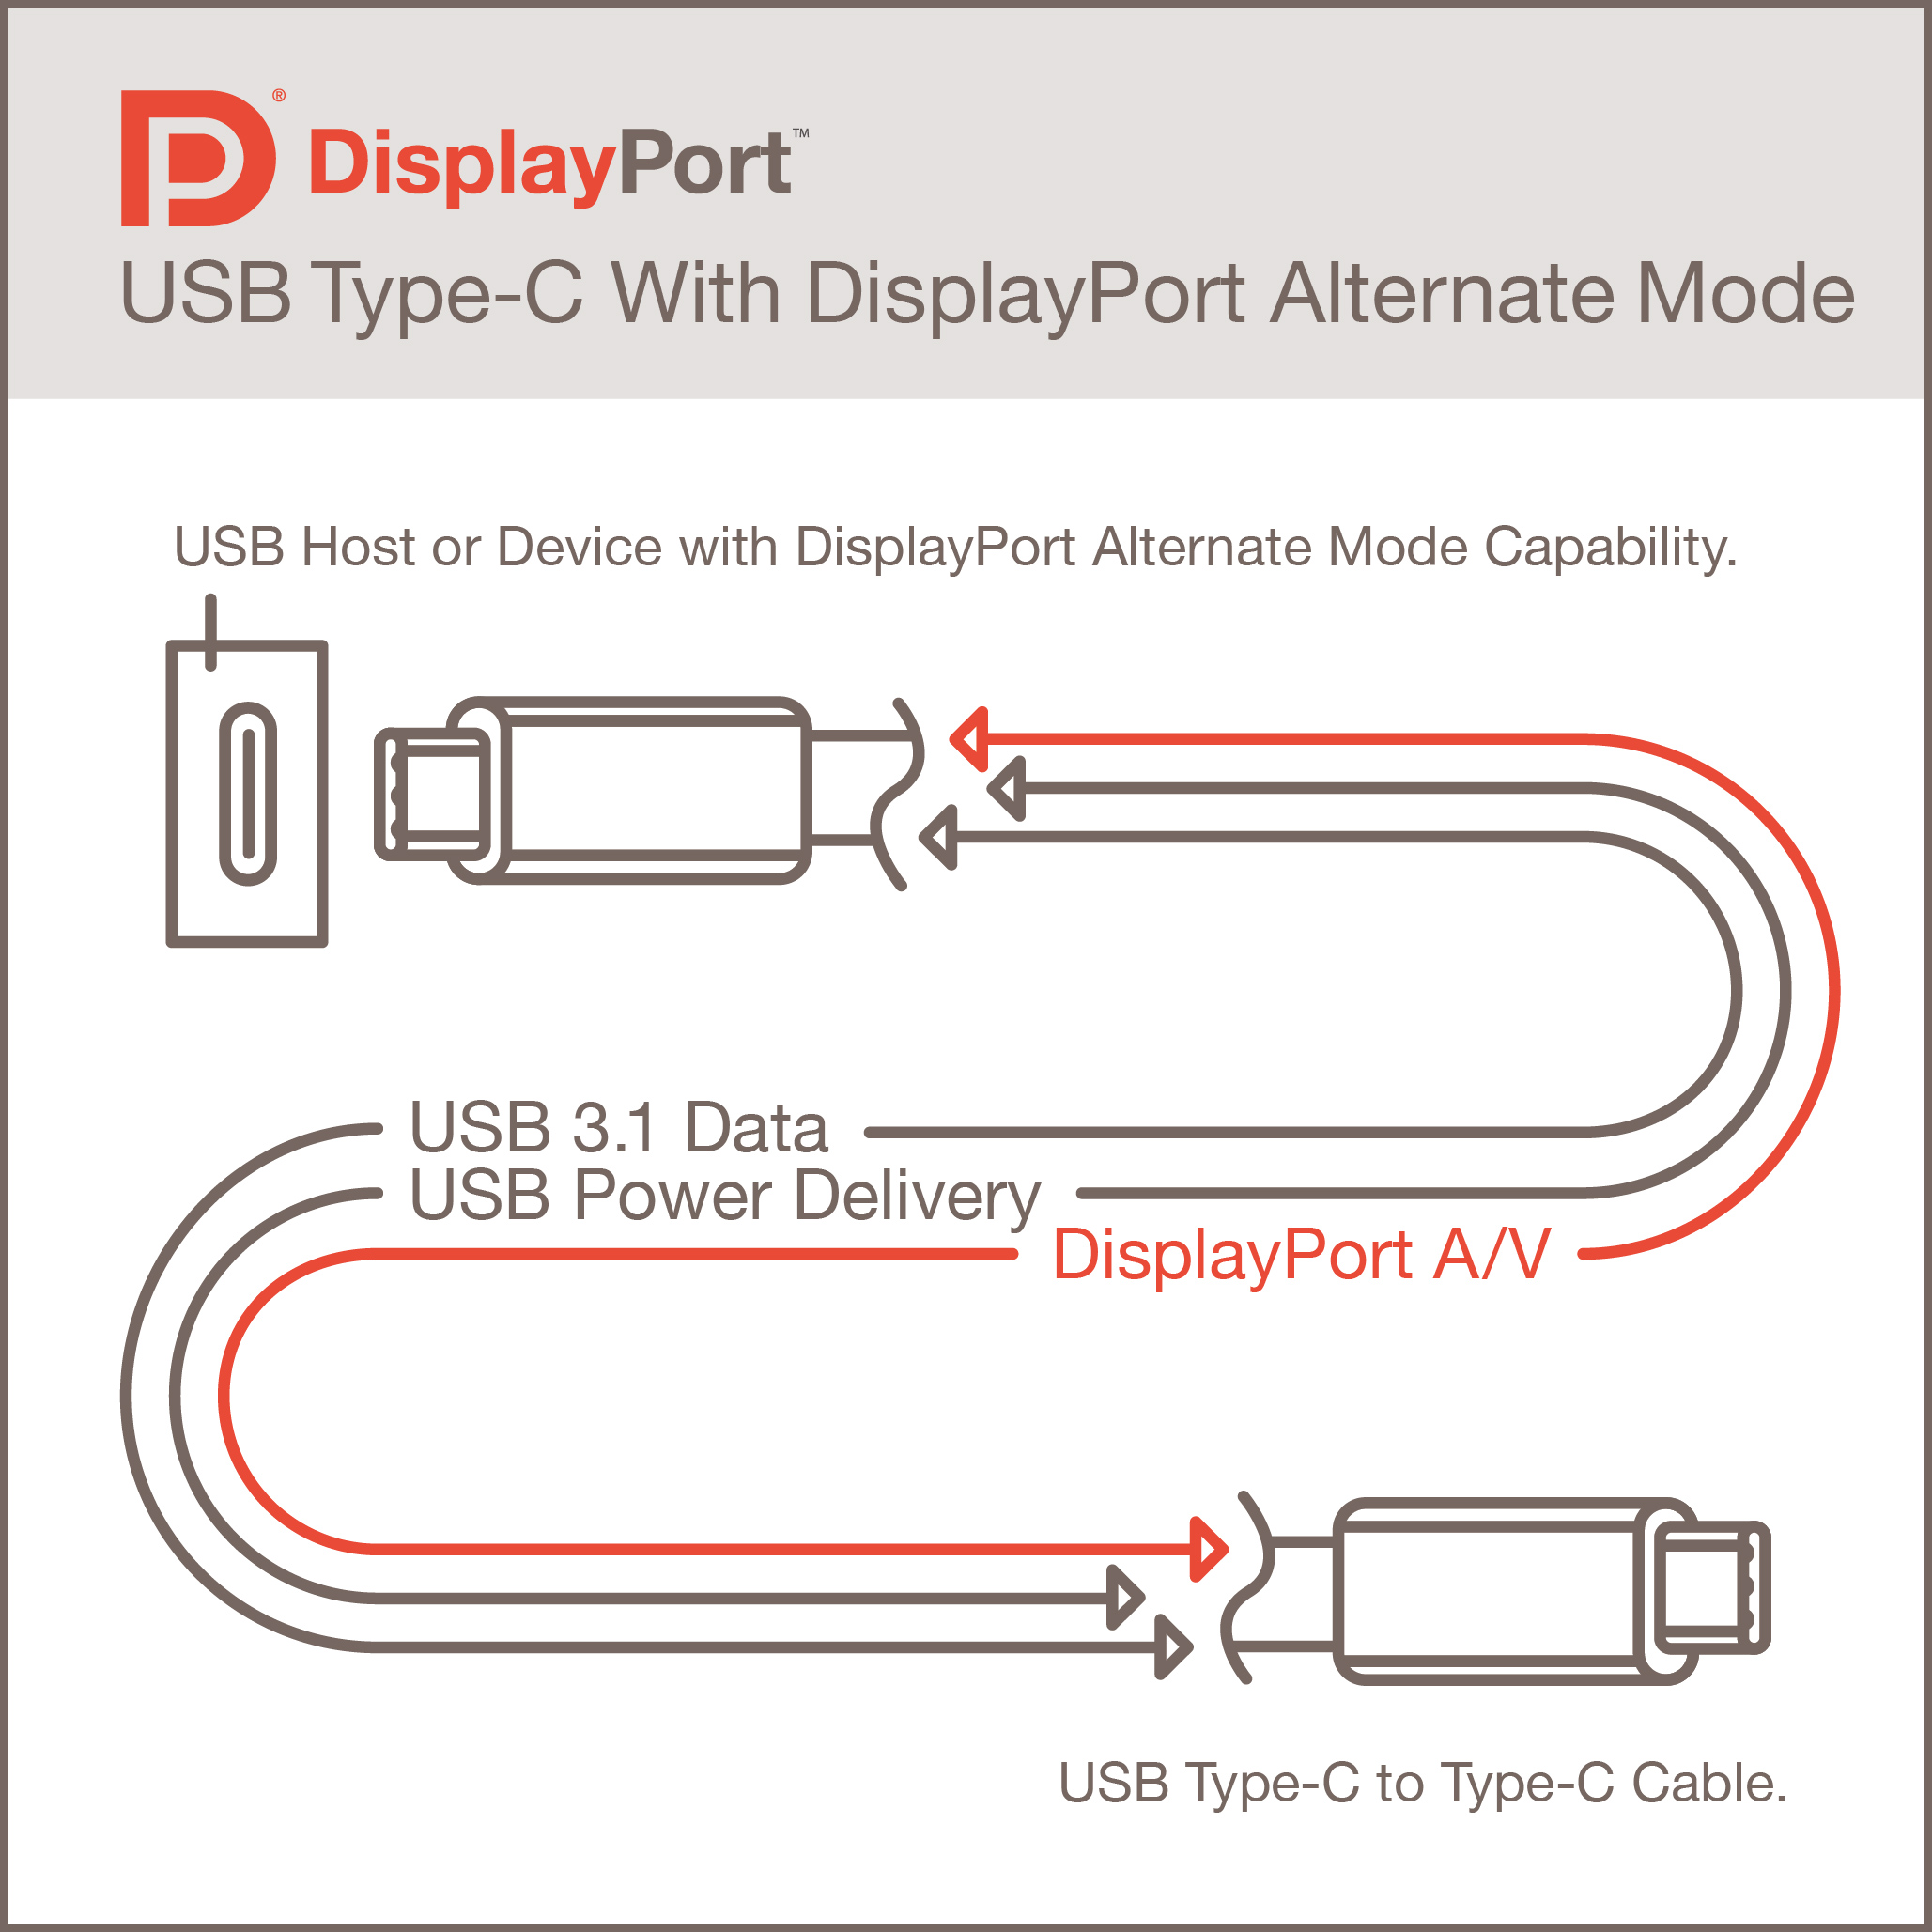 VESA Brings DisplayPort to  USB